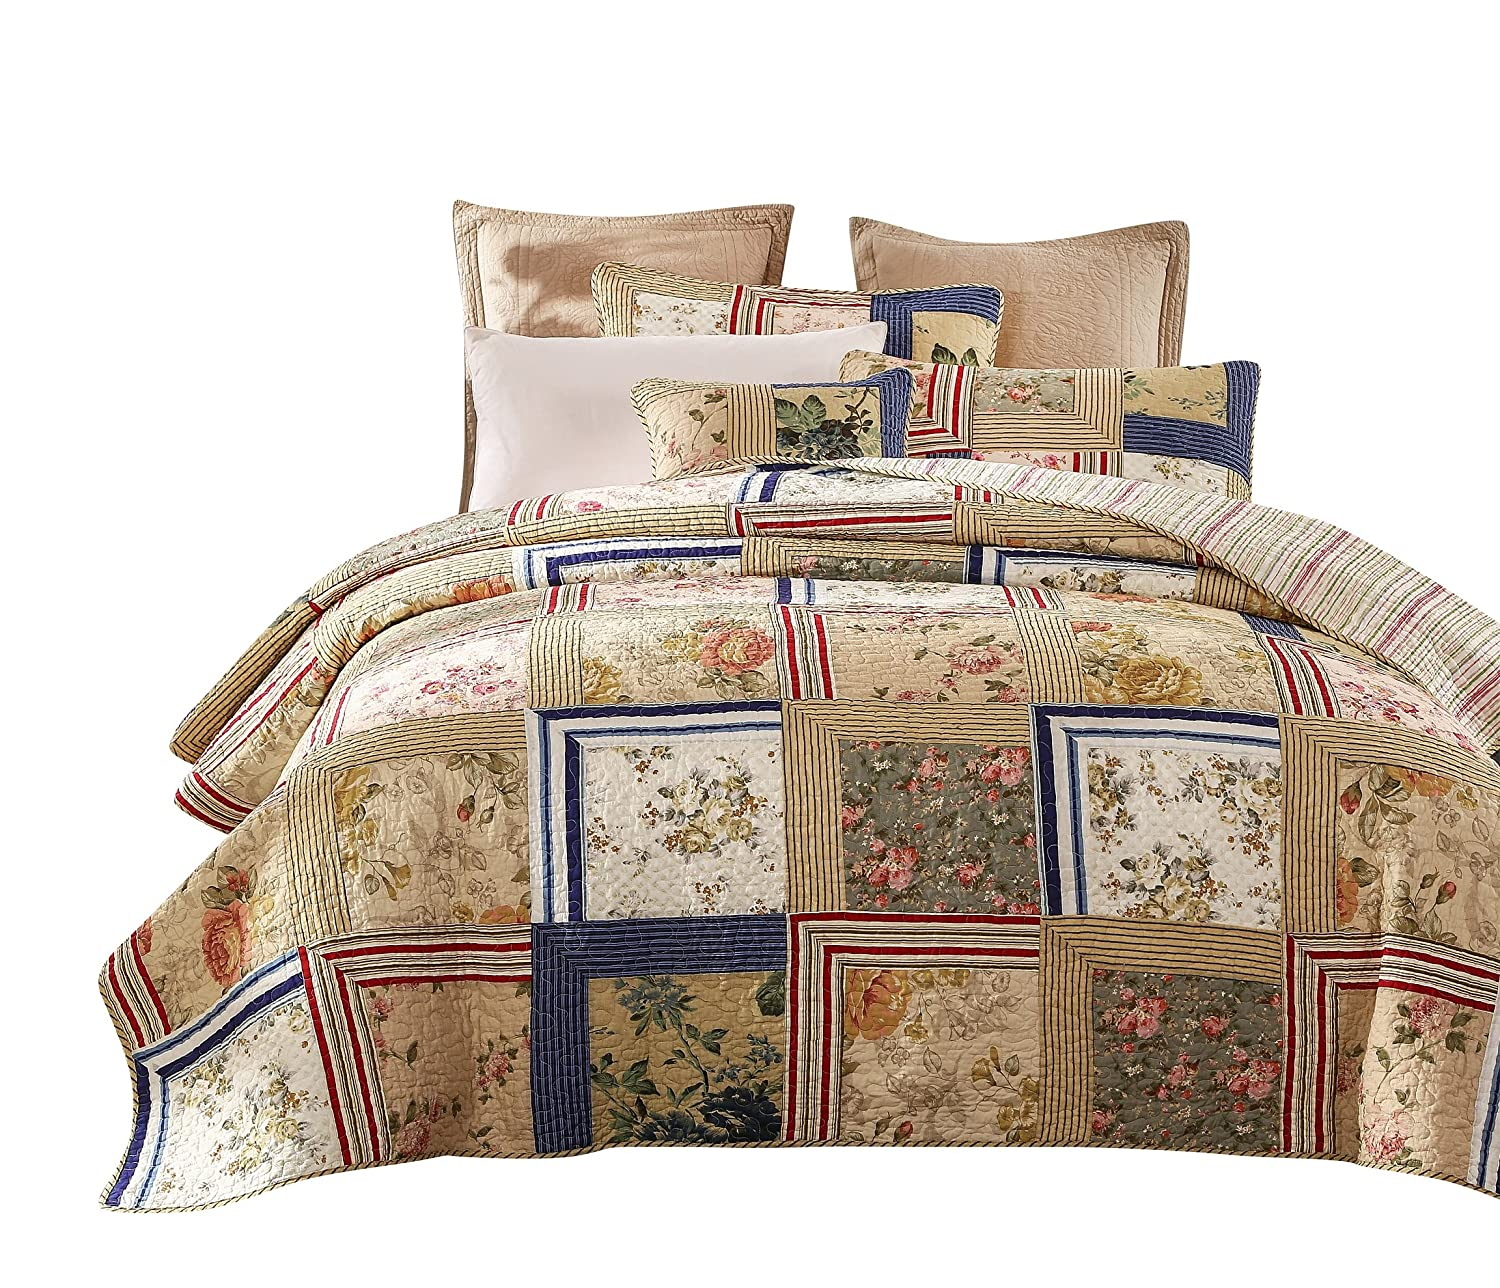 Tache Home Fashion Japanese Emperor Garden Floral Patchwork Quilt Bedspread Set, Queen,